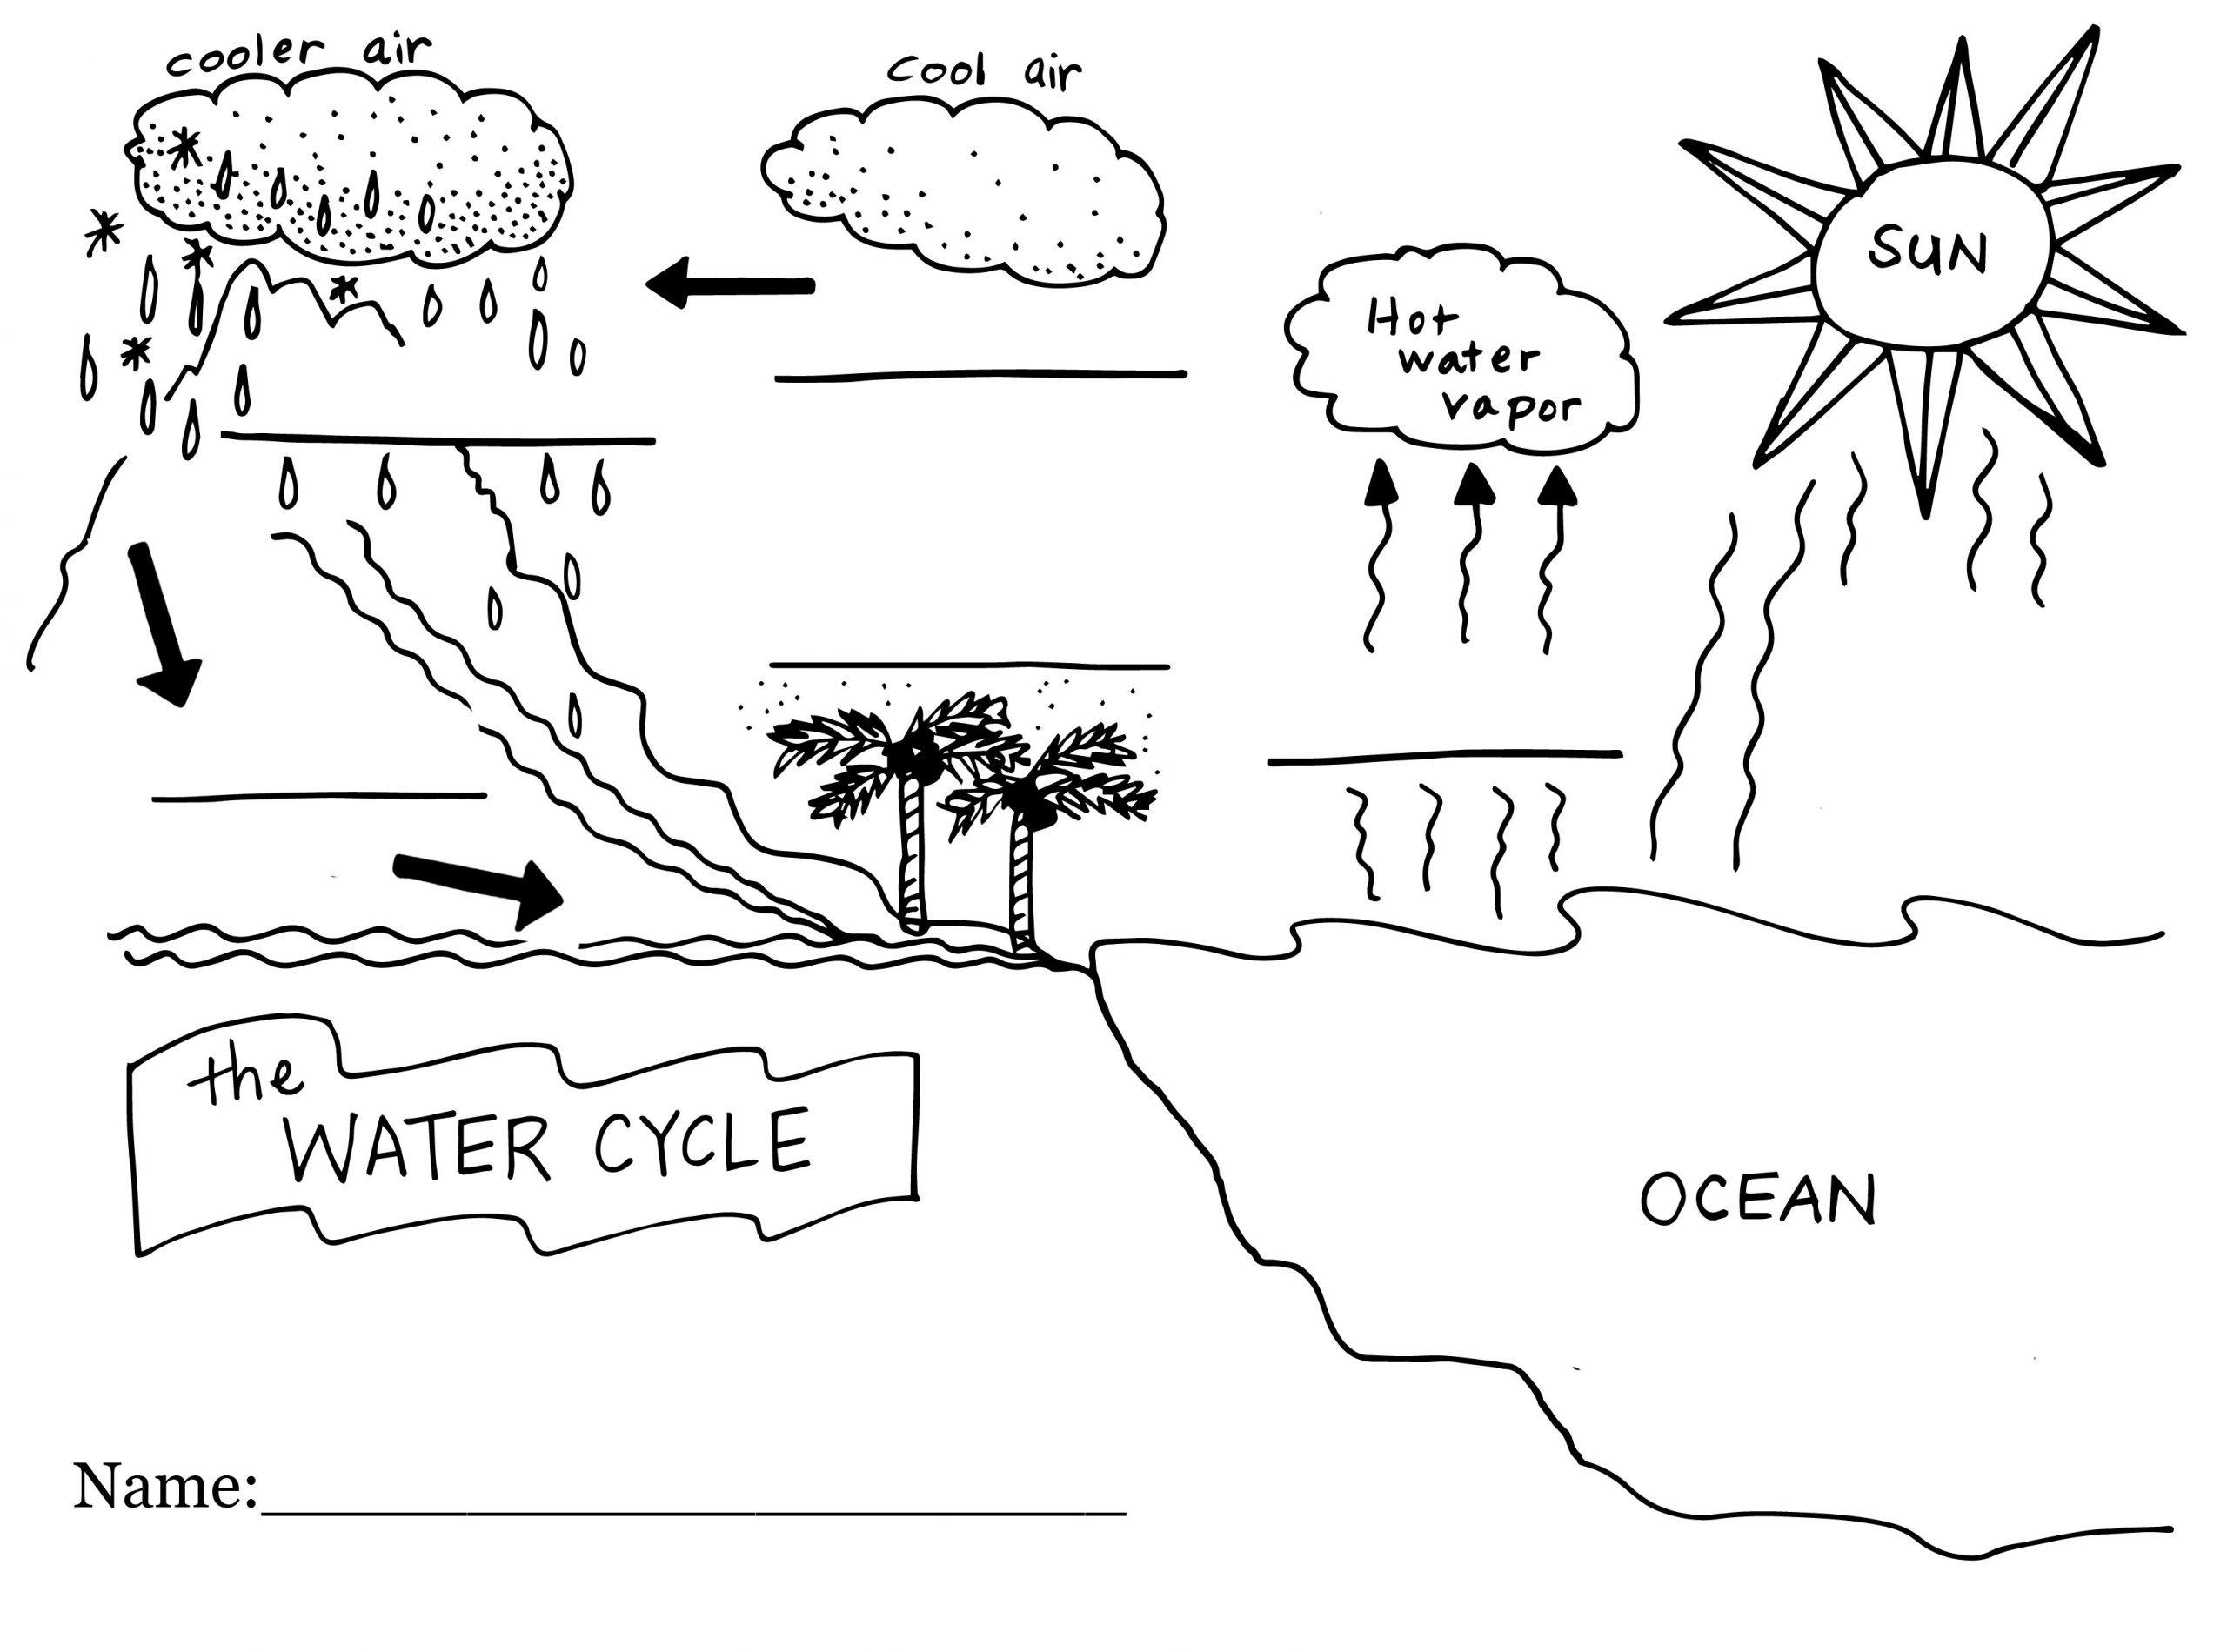 Water Cycle Worksheet 5th Grade Cell Cycle Labeling Worksheet Pleted